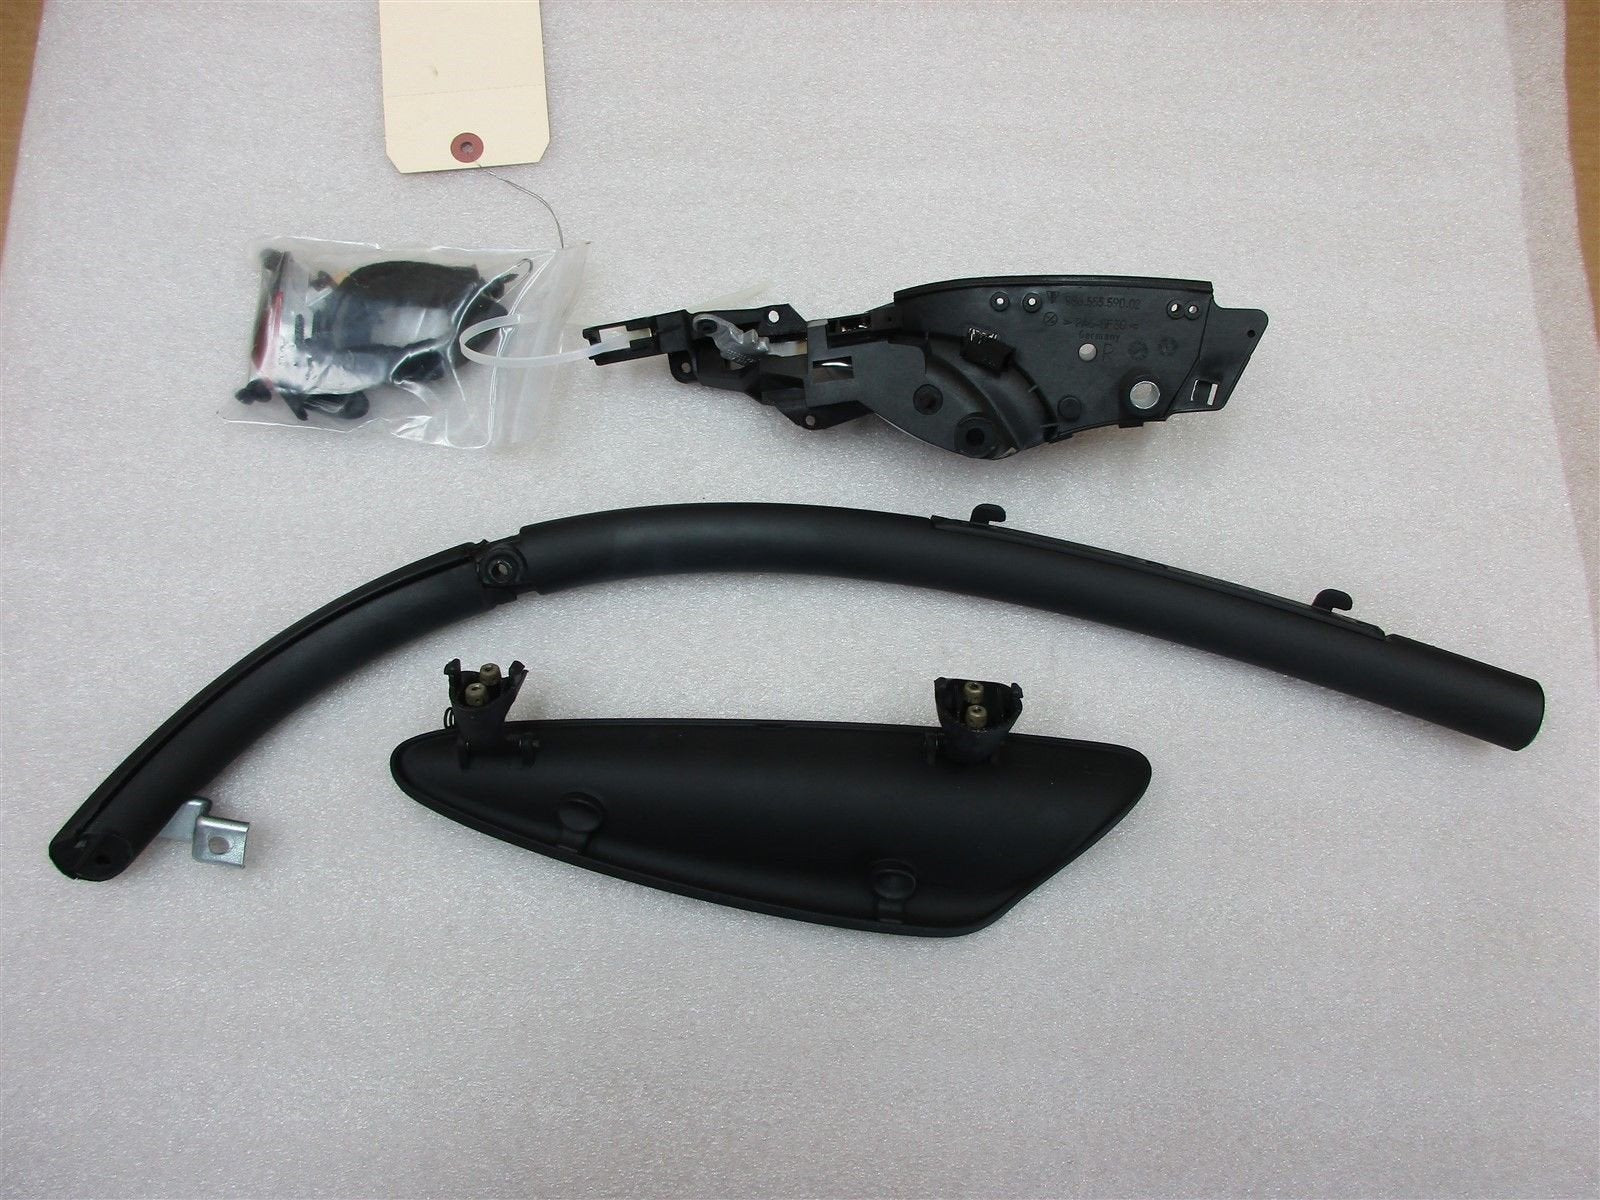 01 Boxster Porsche R Black Silver INTERIOR DOOR PANEL HANDLE 98655562202 26,025